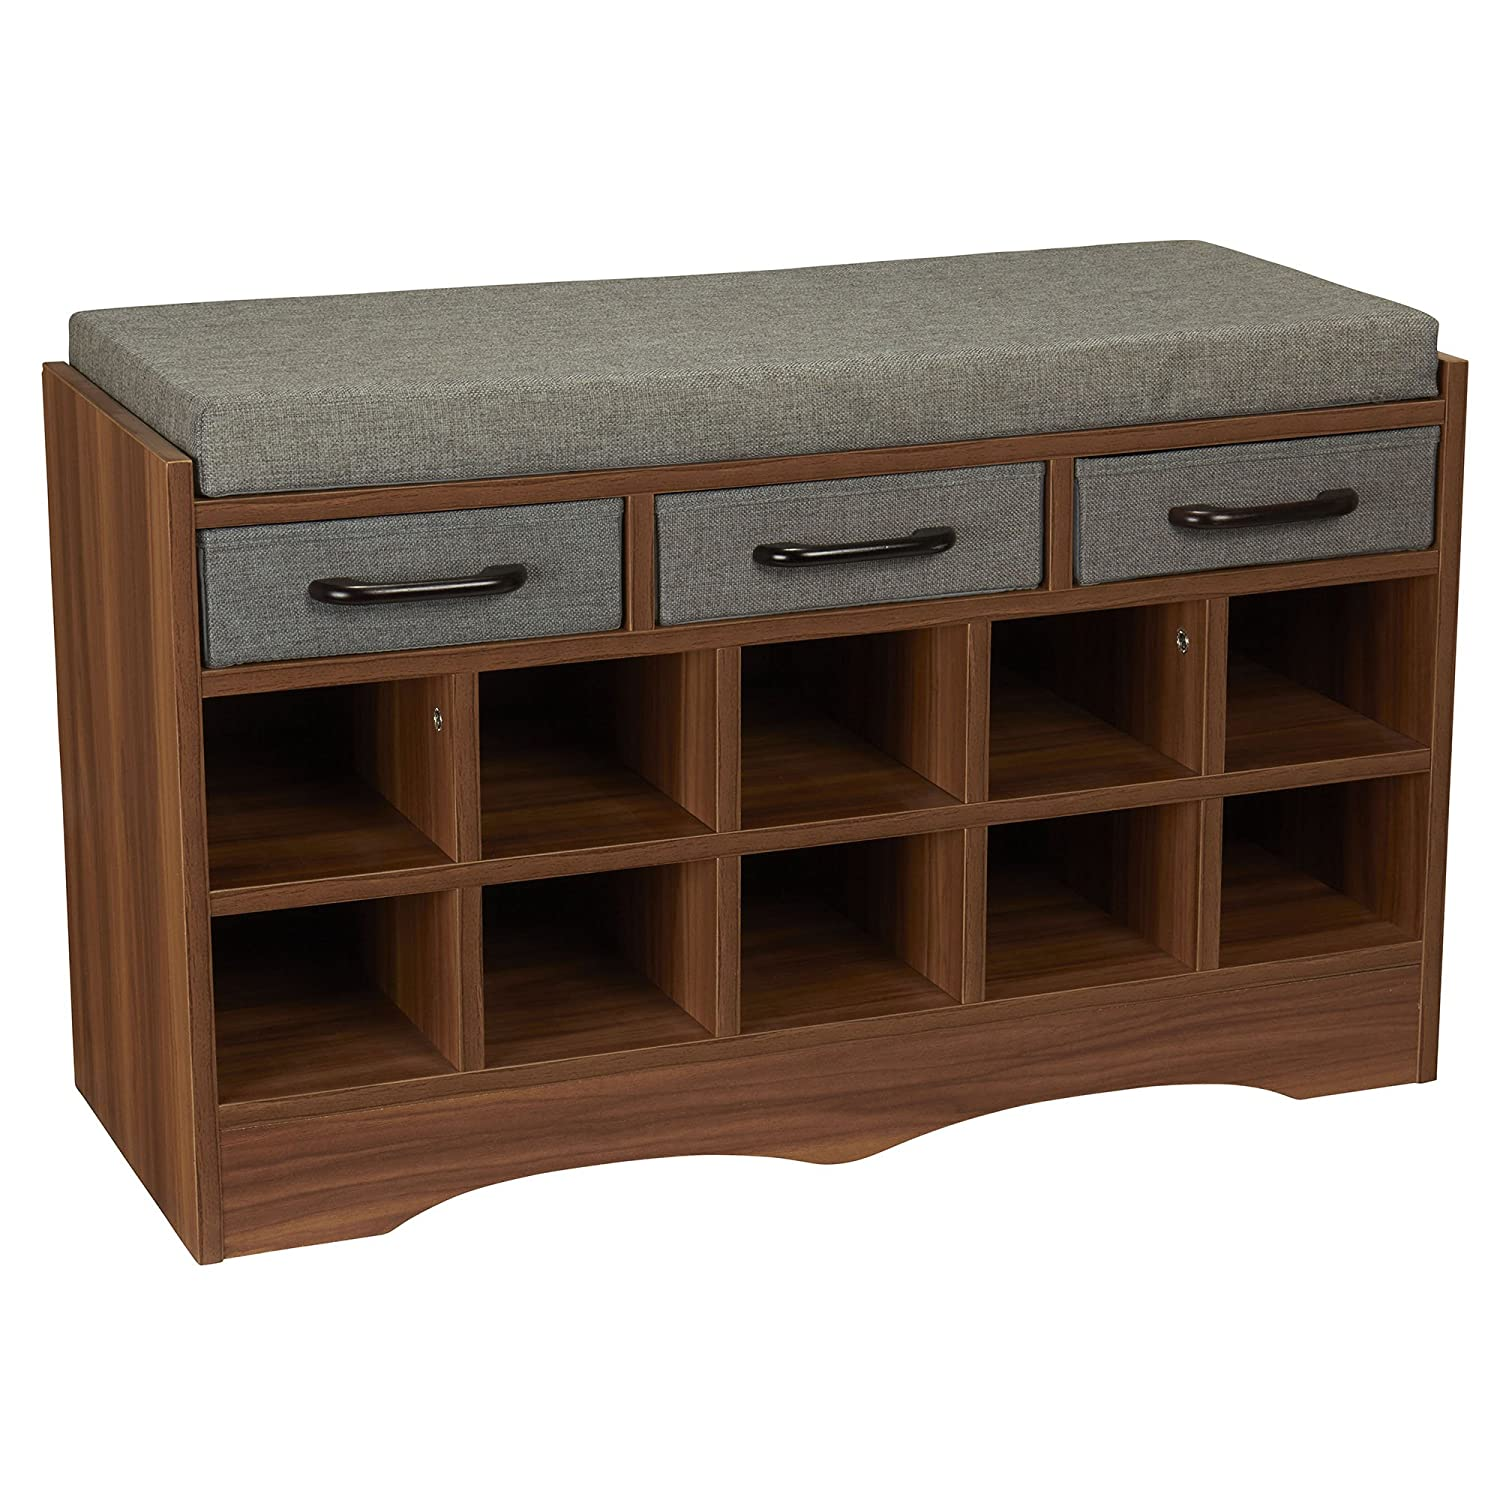 Beau Amazon.com: Household Essentials Entryway Shoe Storage Bench With Cushion  And Drawers, Brown: Home U0026 Kitchen